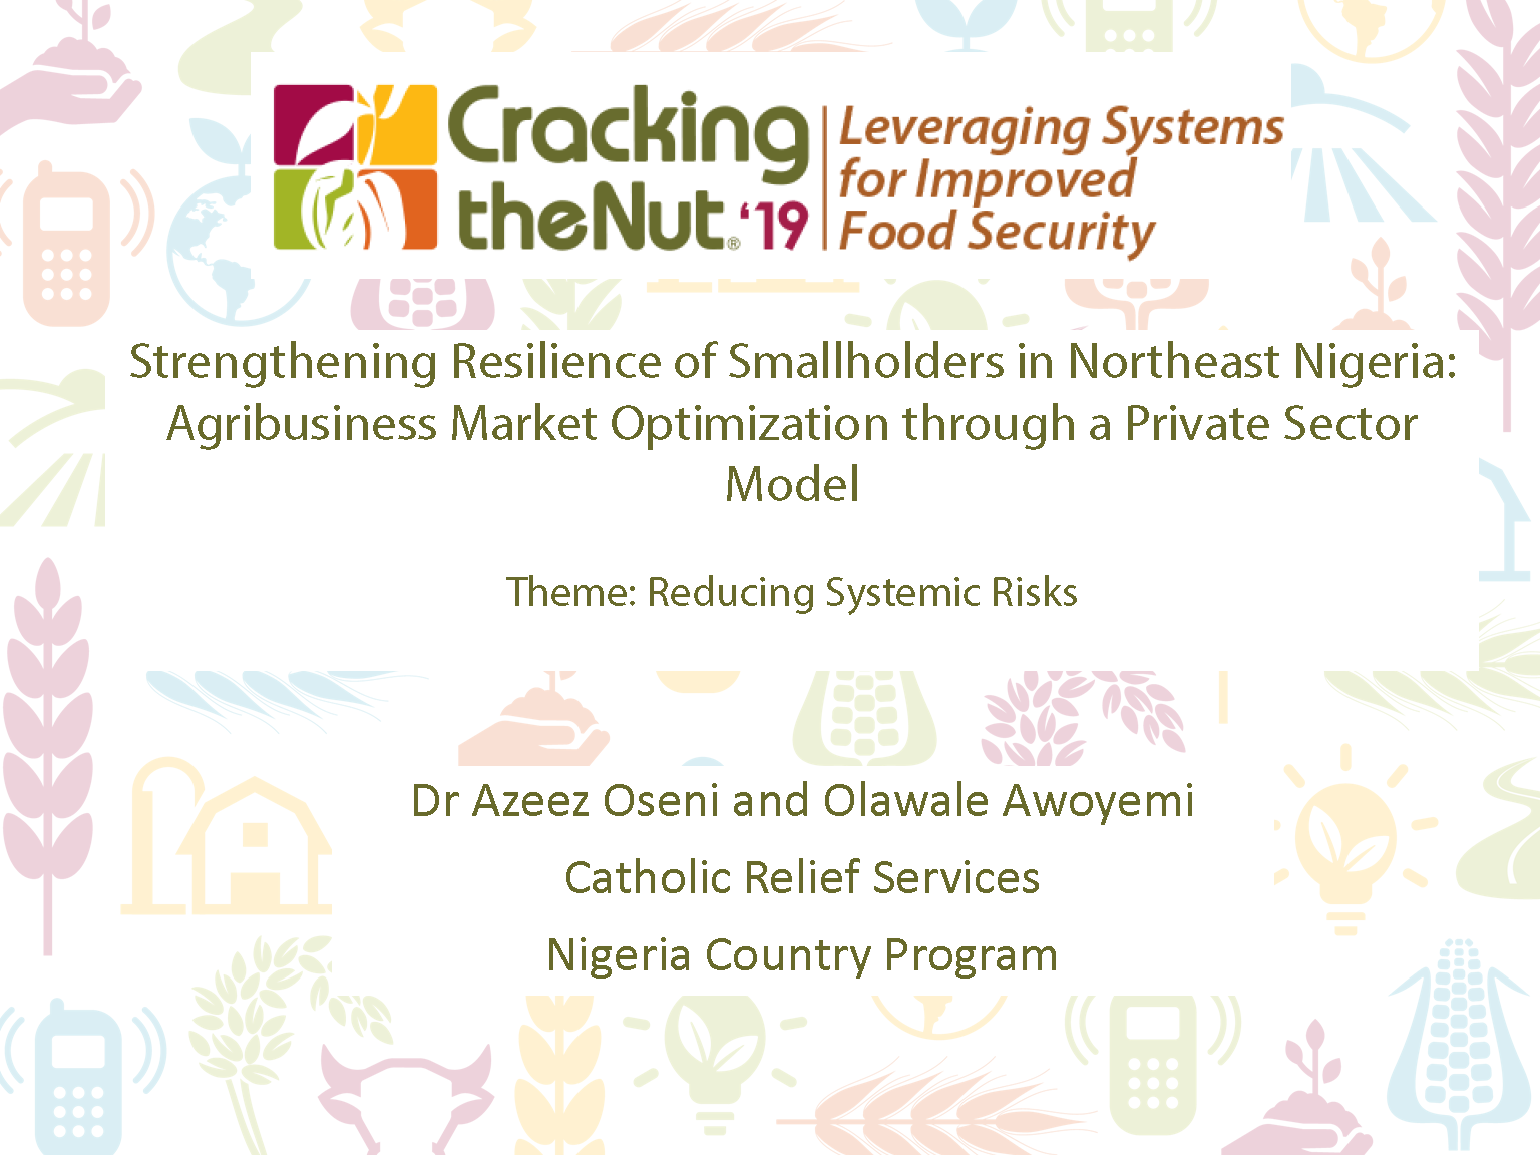 Session 1.2: Strengthening the Resilience of Smallholders in Northeast Nigeria: Agribusiness Market Optimization through a Private Sector Model